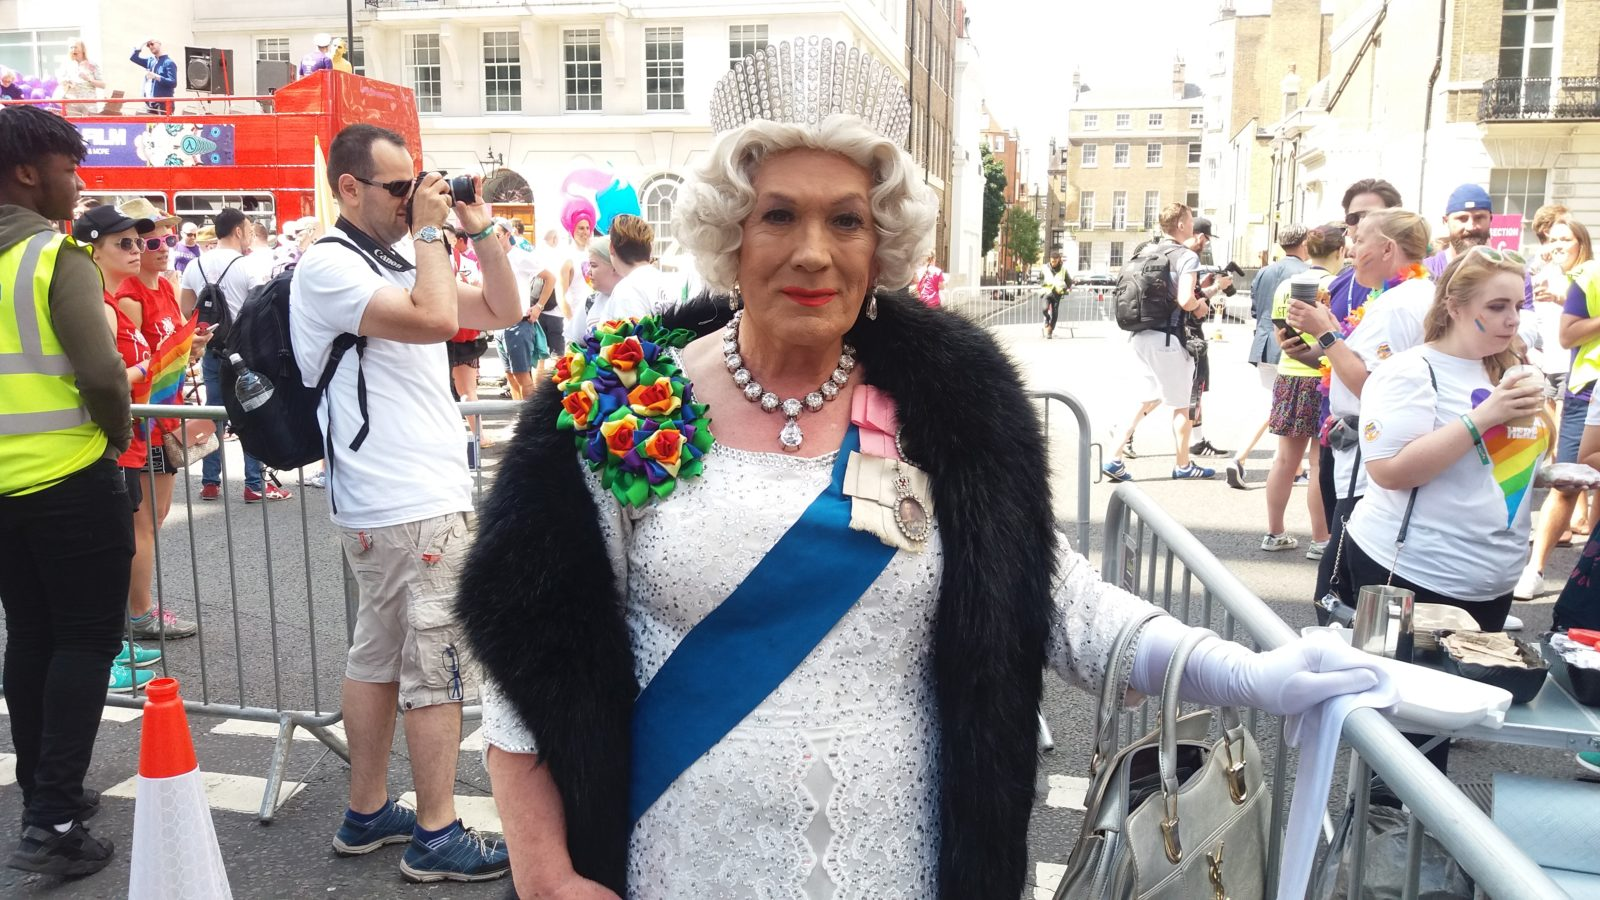 """The Queen"" at Pride in London 2017"